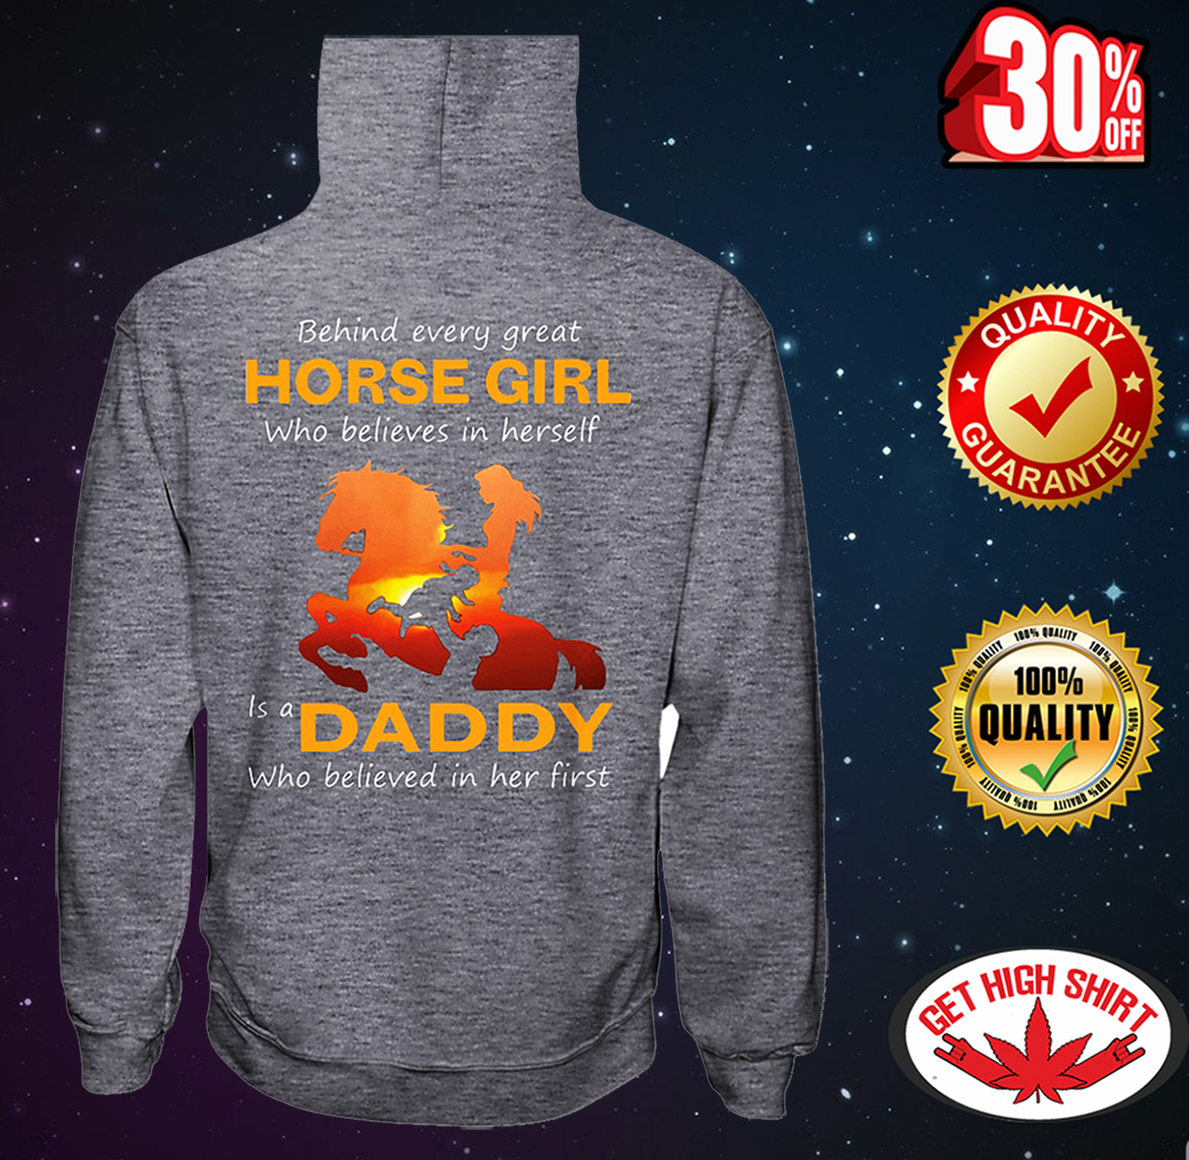 Behind every great horse girl who believes in herself is a daddy who believed in her first hooded sweatshirt